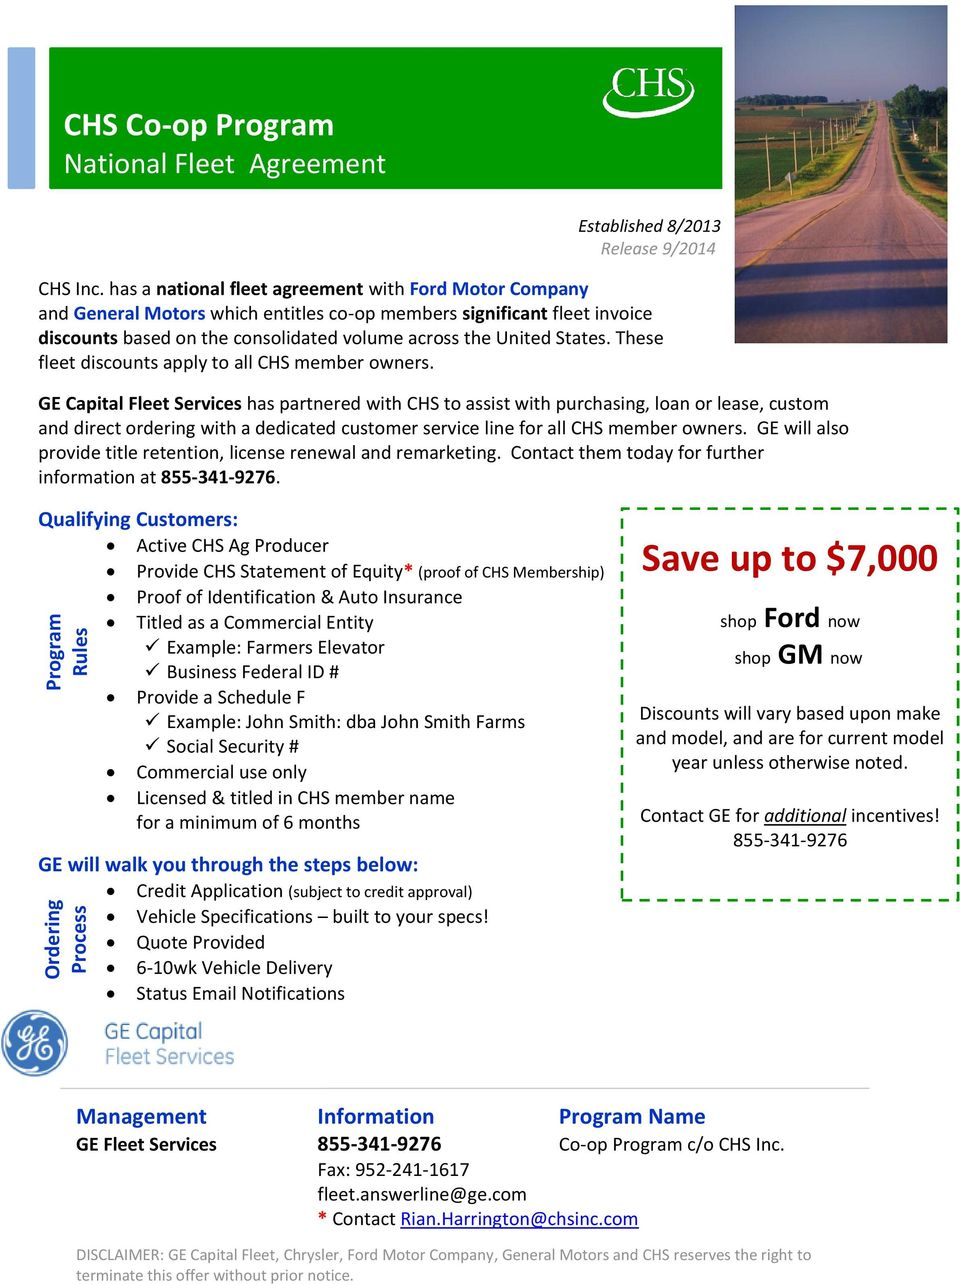 Save Up To 7000 Chs Co Op Program National Fleet Agreement Pdf